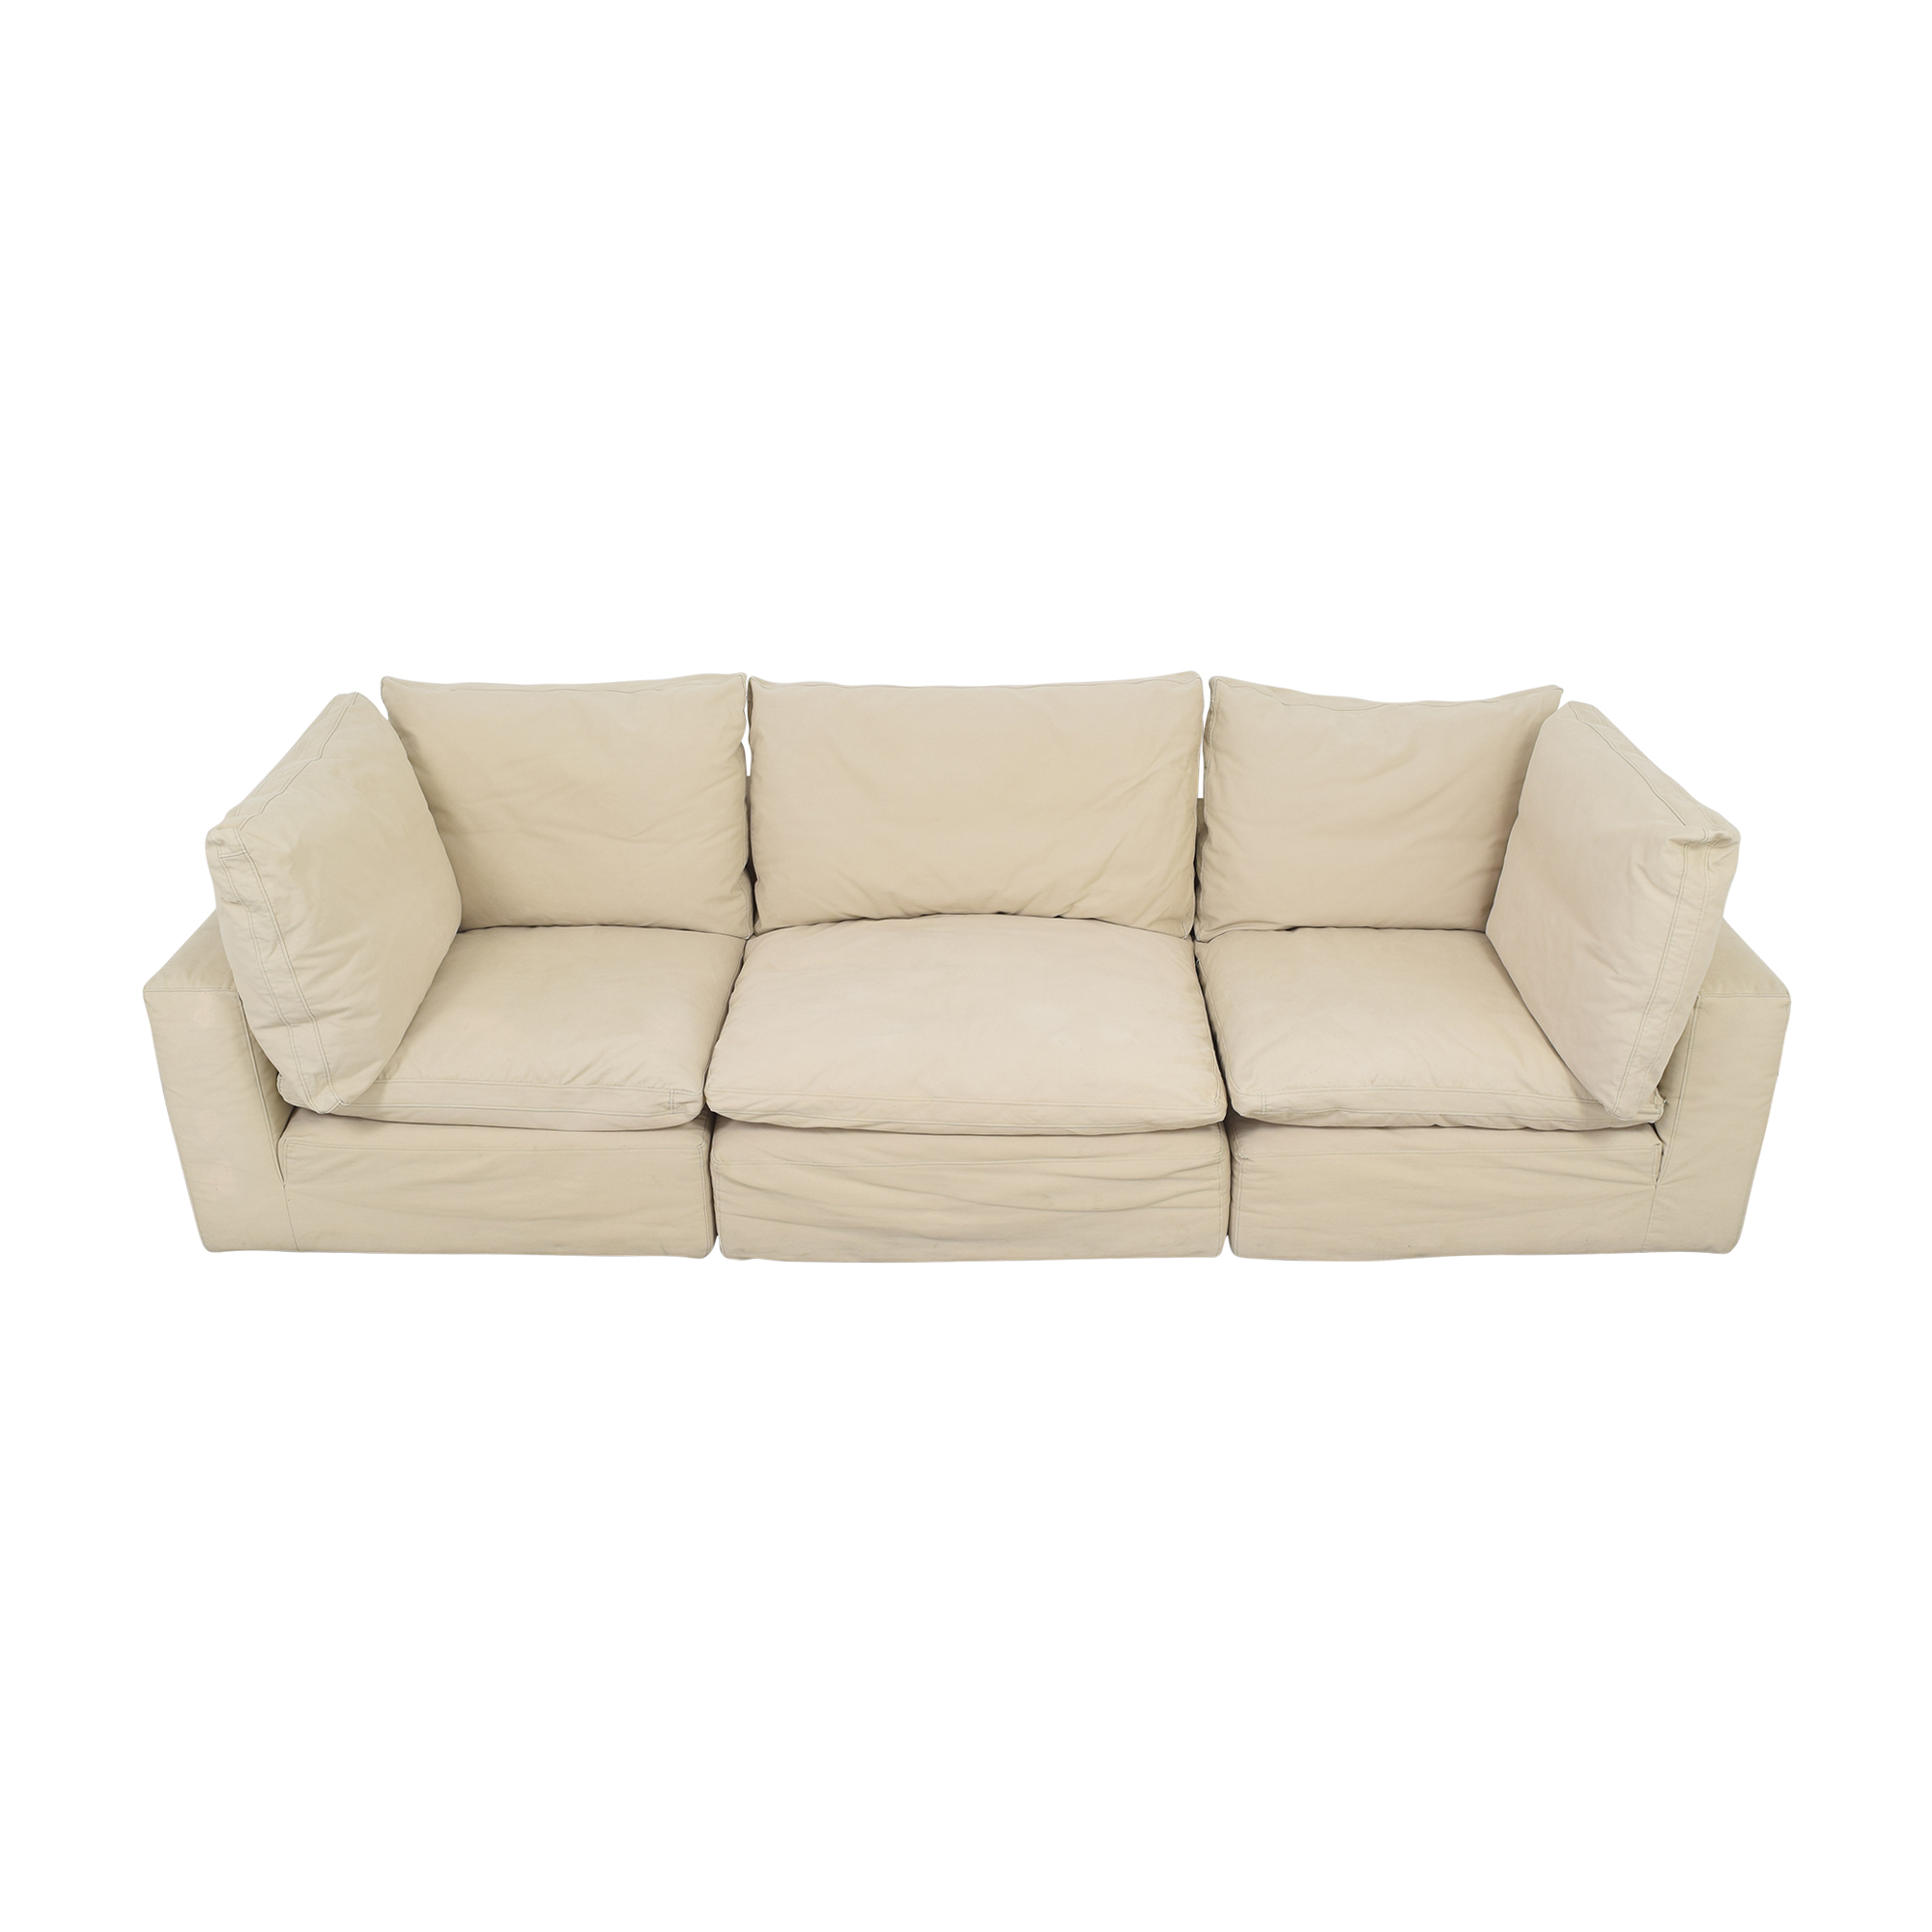 shop Restoration Hardware Restoration Hardware Cloud Modular Sofa online